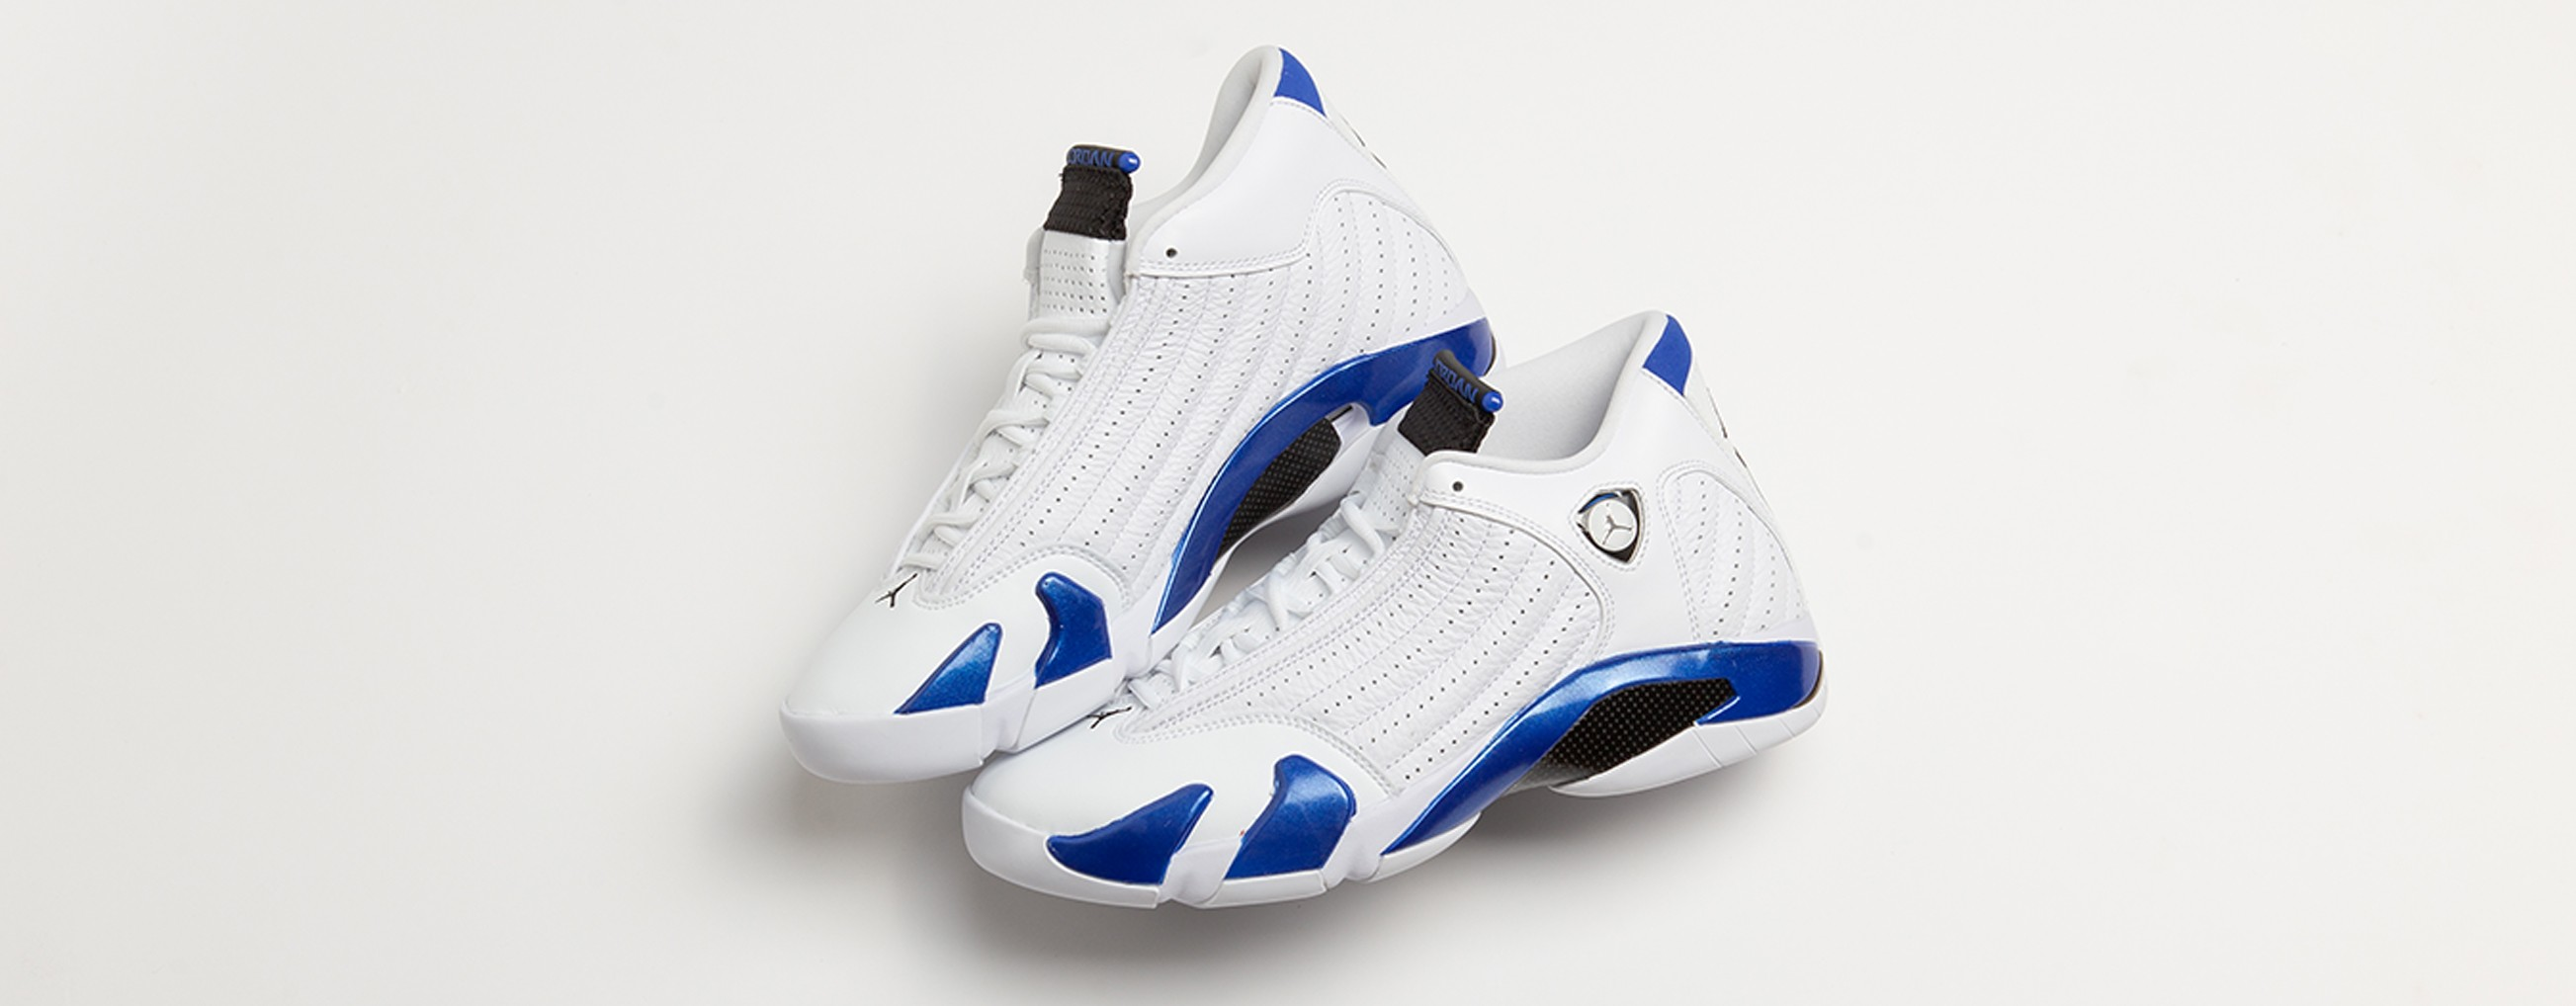 JORDAN 14 RETRO WHITE / BLACK / HYPER ROYAL